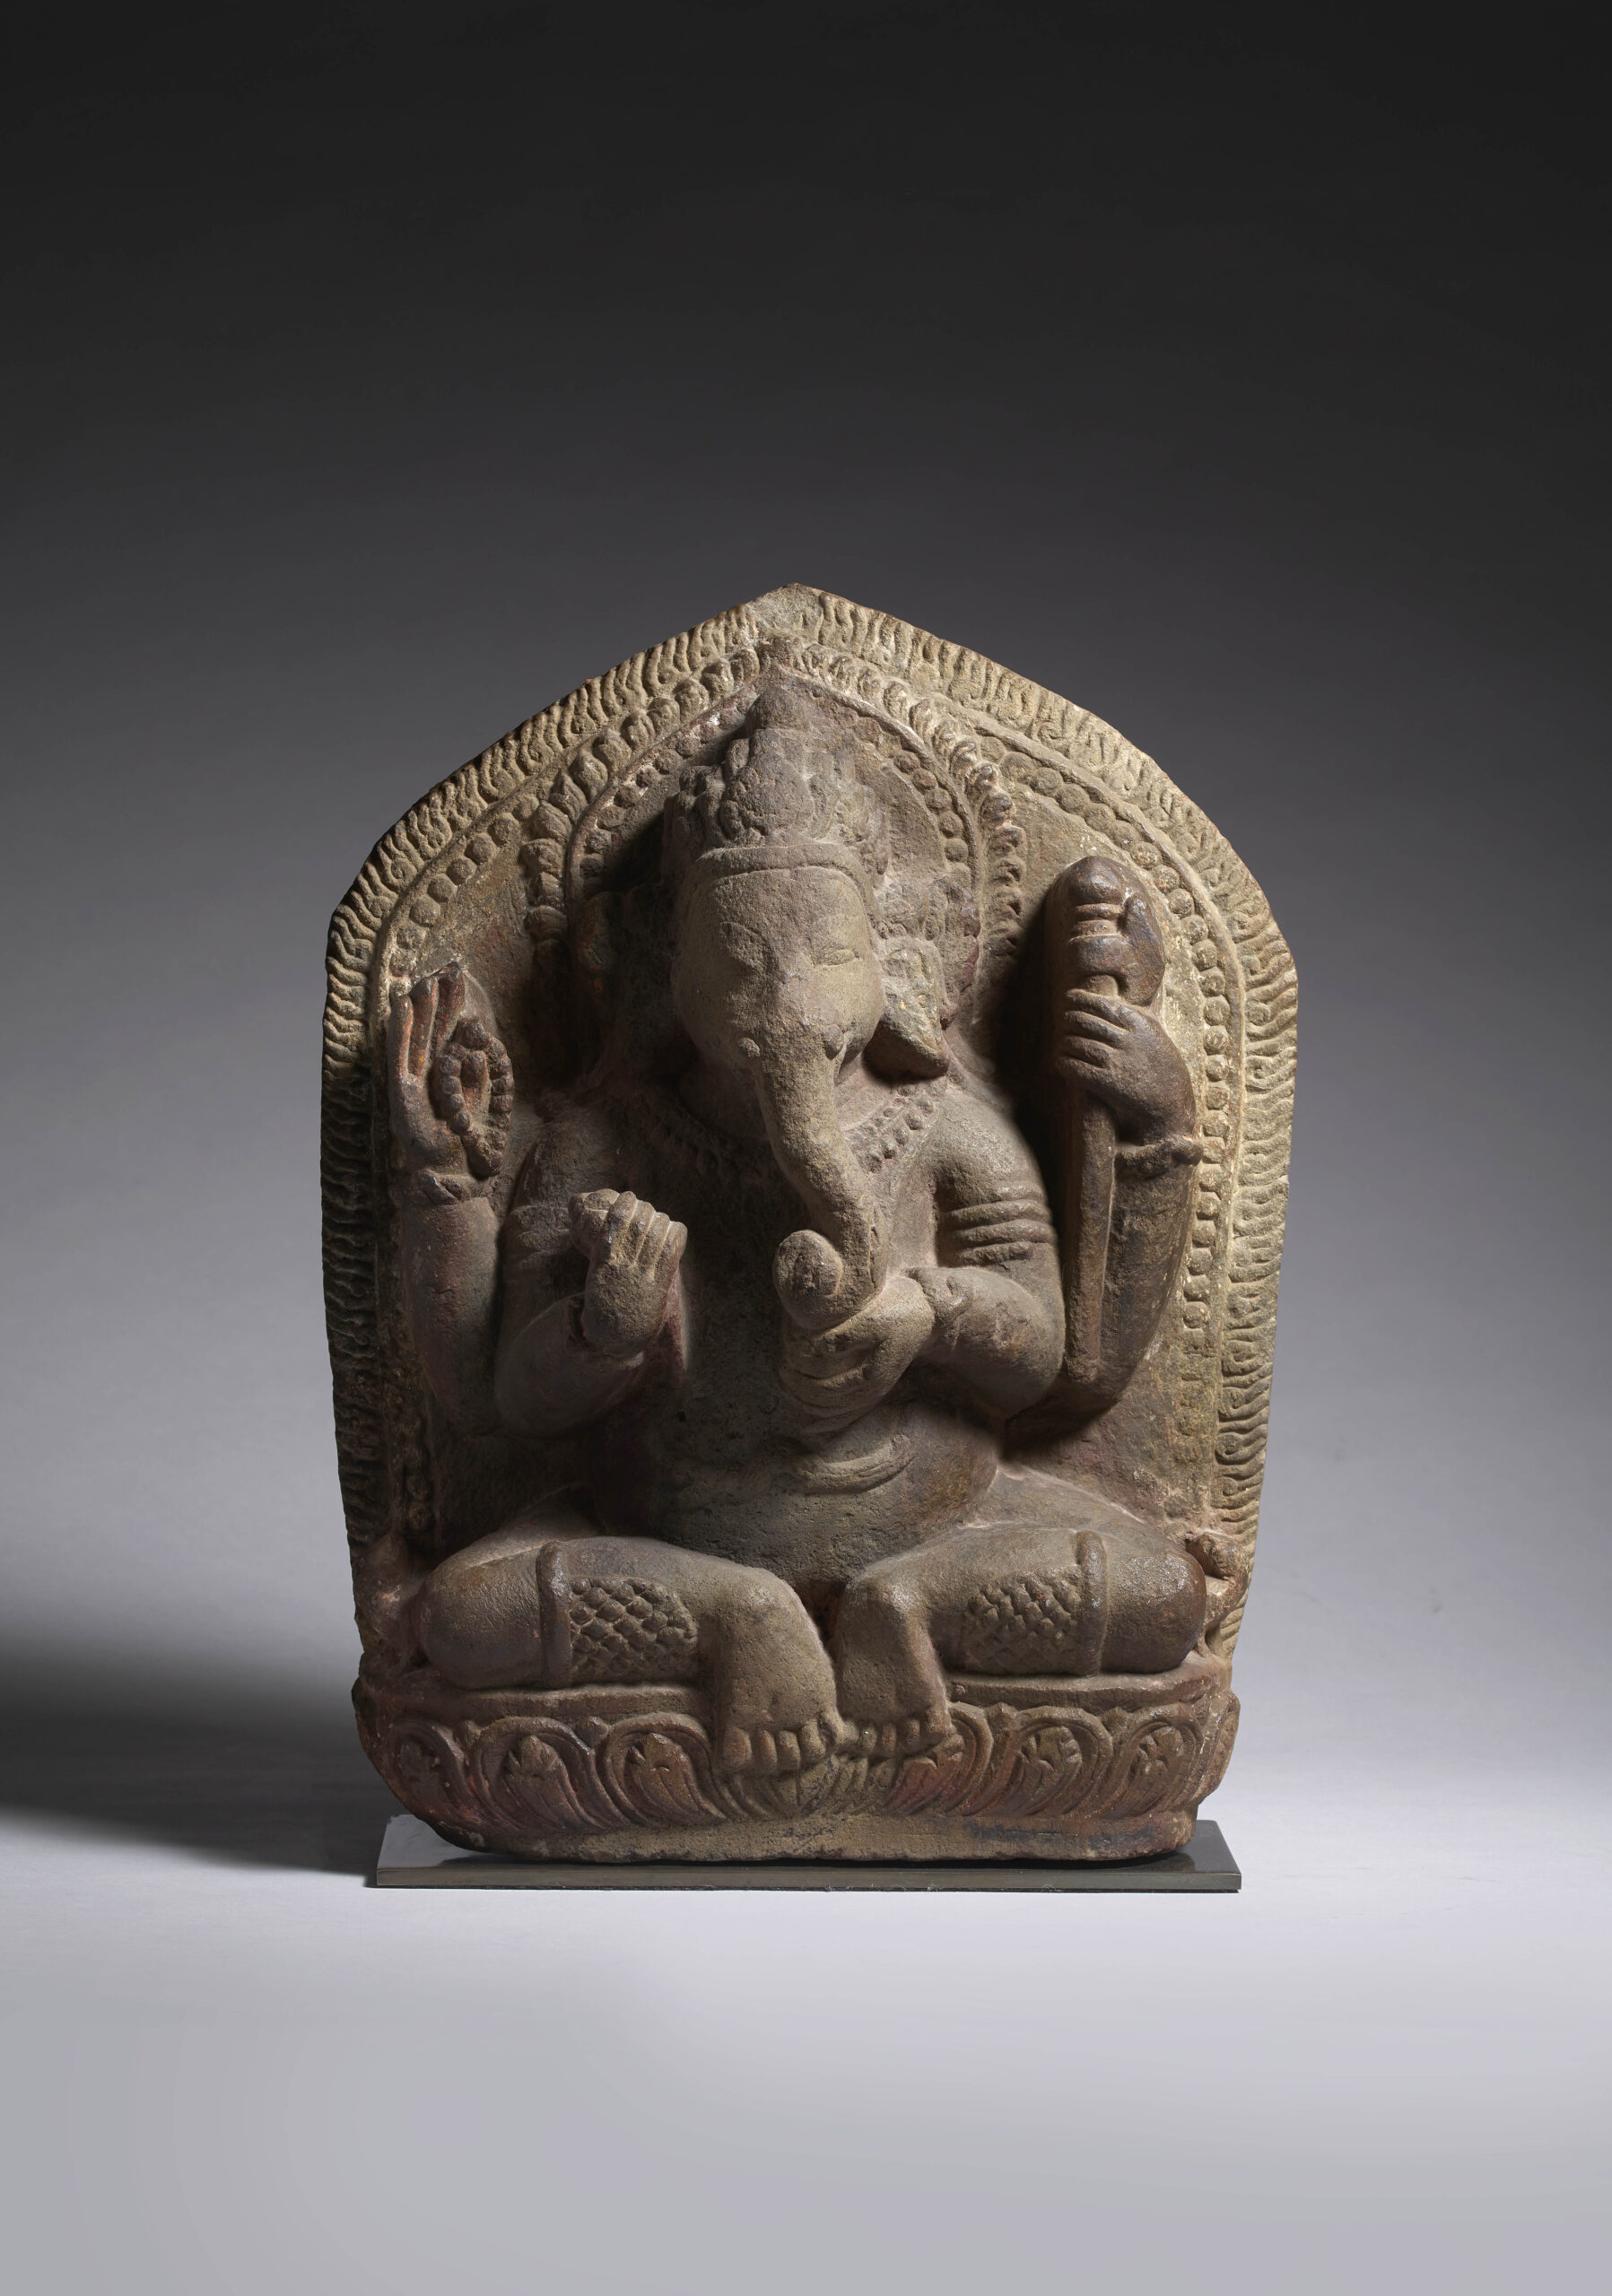 Stone Ganesha Nepal, 16th - 17th century Height: 17 3/4 inches, 45 cm Width: 14 inches, 35.5 cm